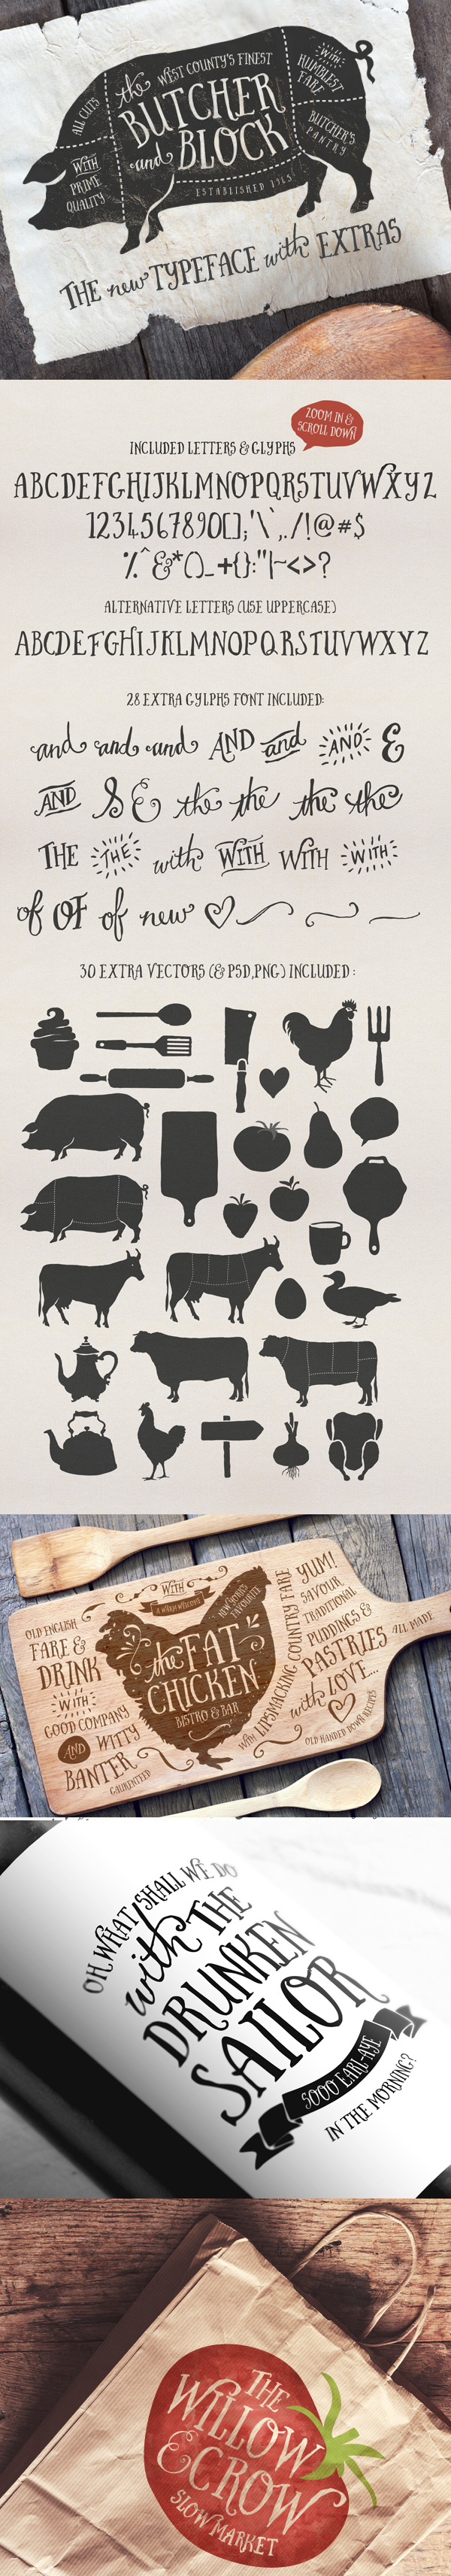 Butcher And Block Font  Extras On Behance